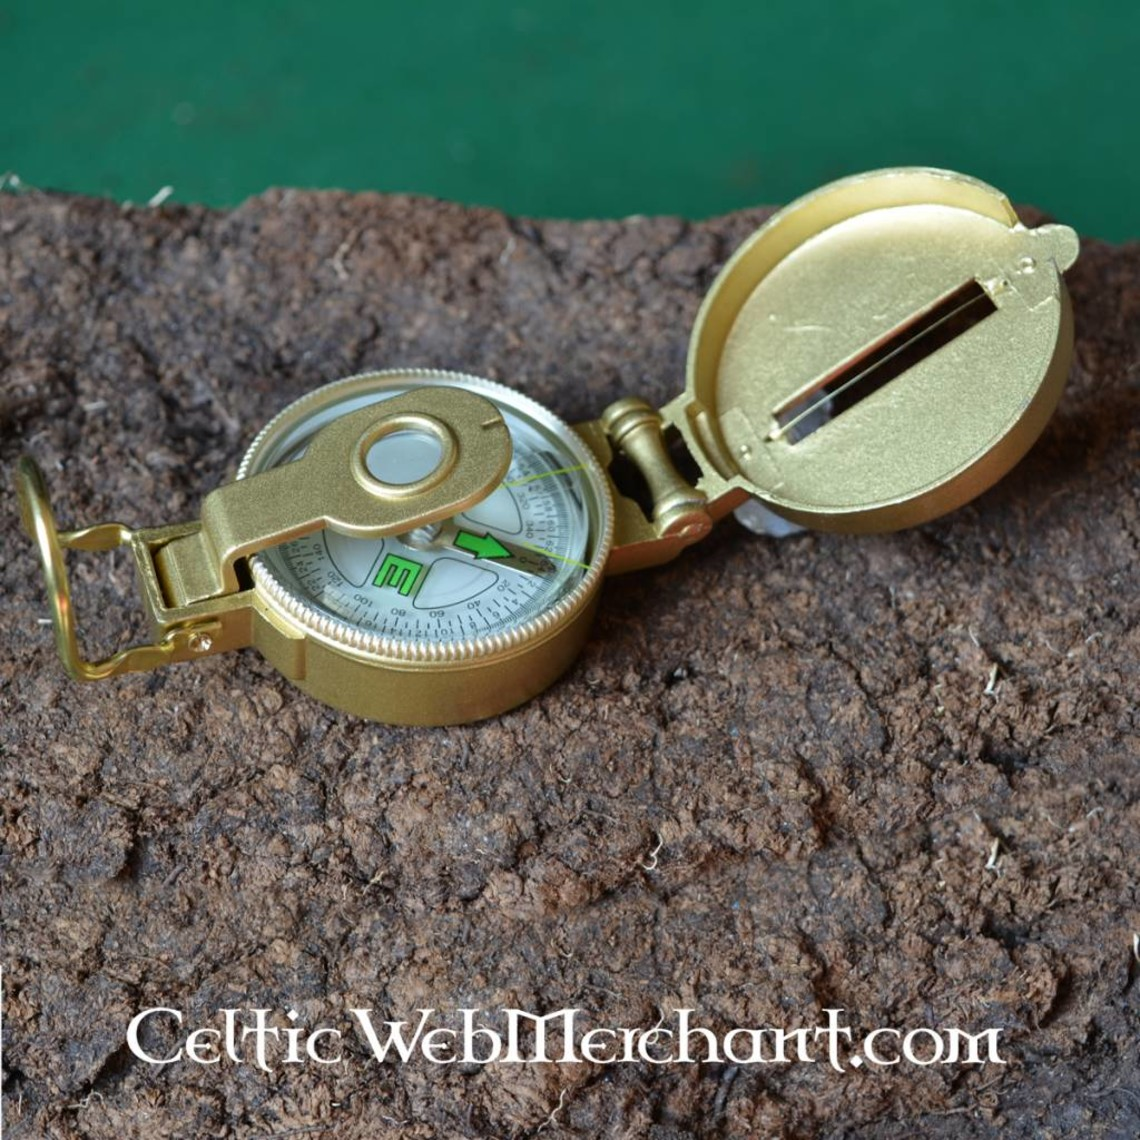 Army compass with metal exterior